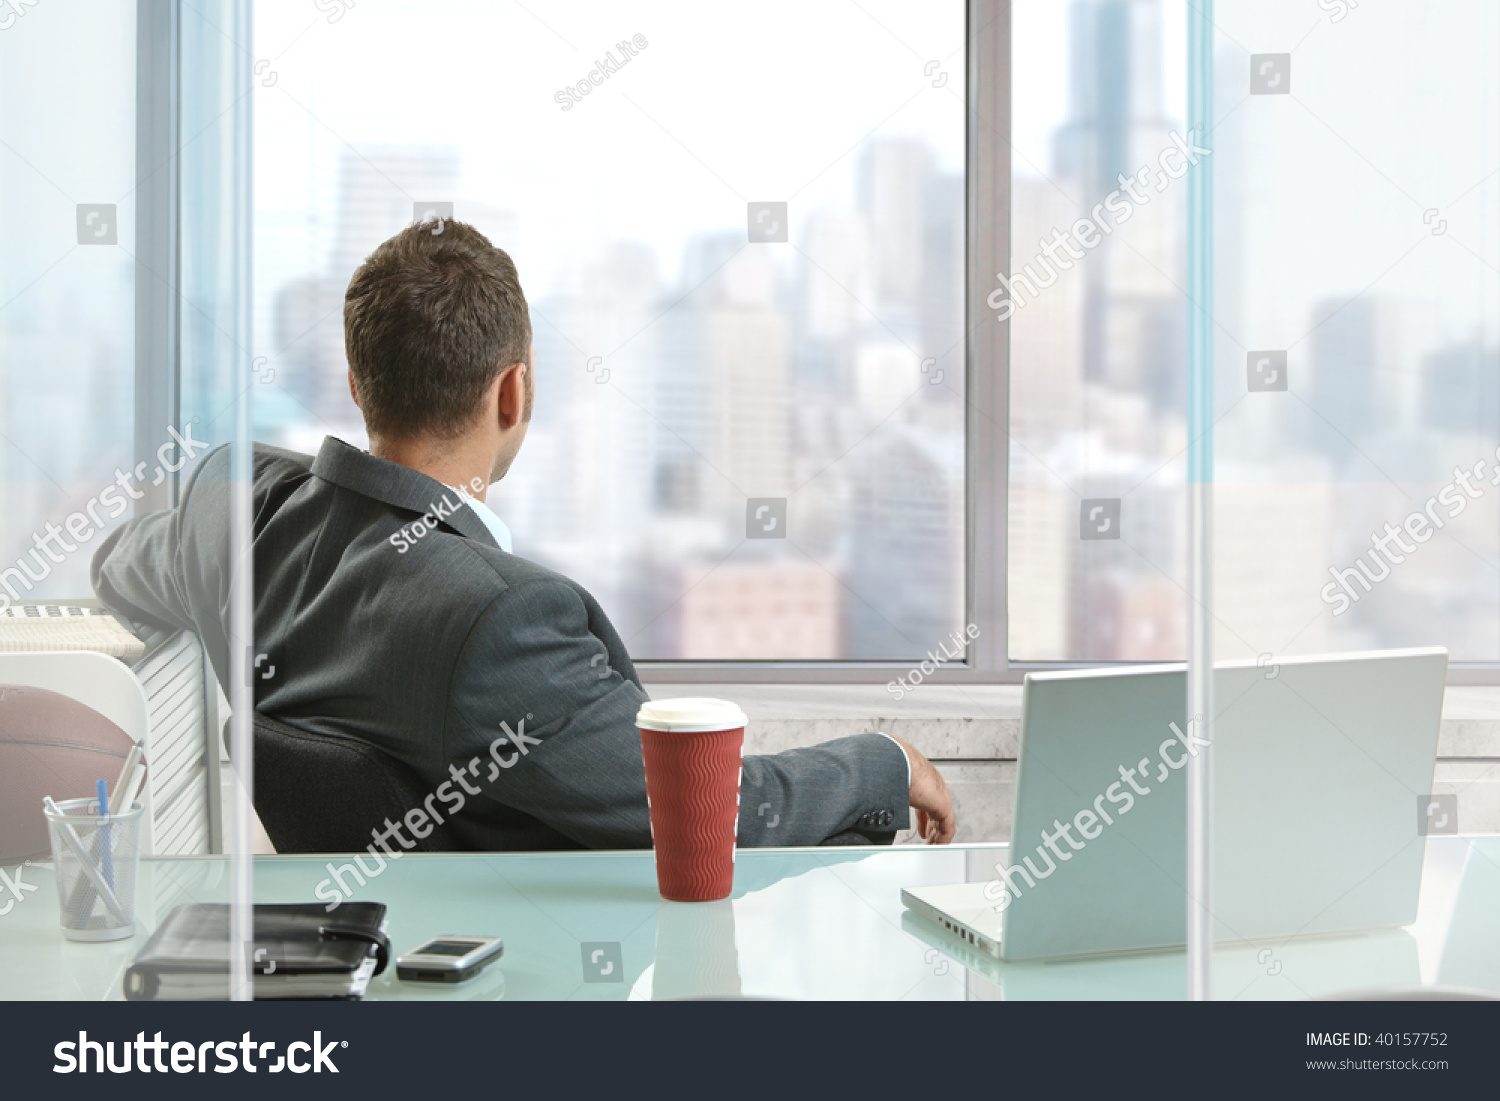 Relaxed Businessman Sitting Desk Office Looking Stock Photo ...